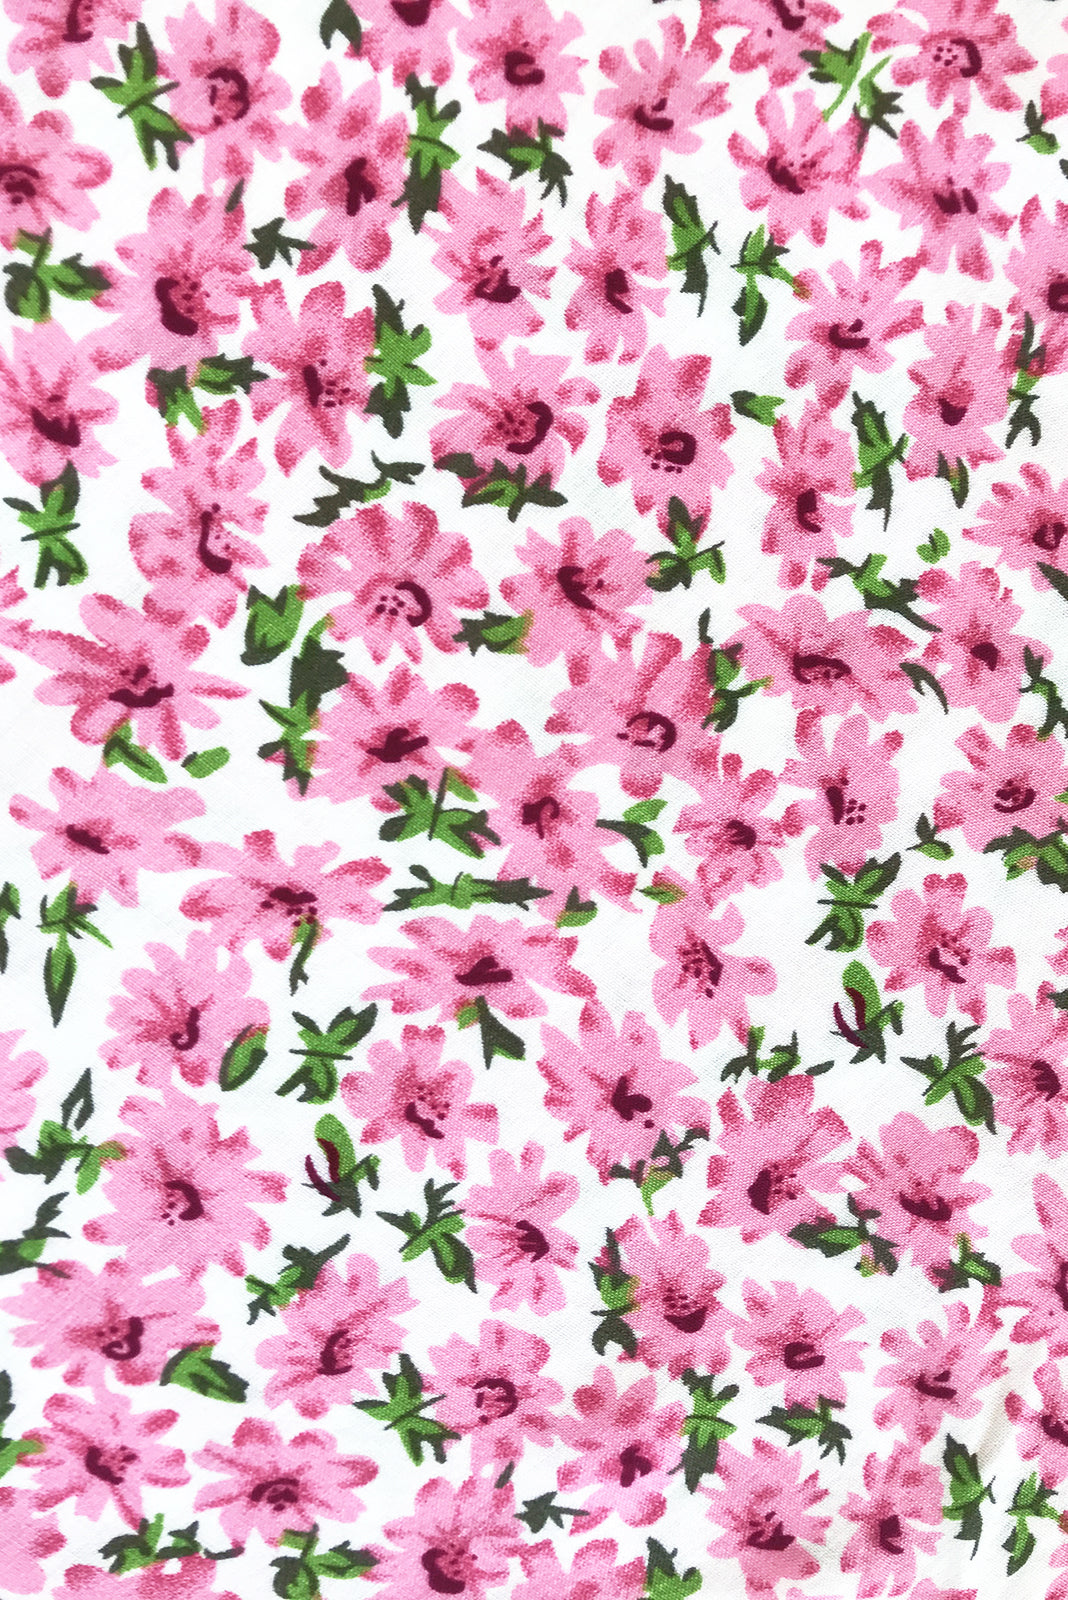 Fabric Swatch of Ruby Tuesday Fresh Pink Dress featuring 100% viscose in white base with pink flower print.